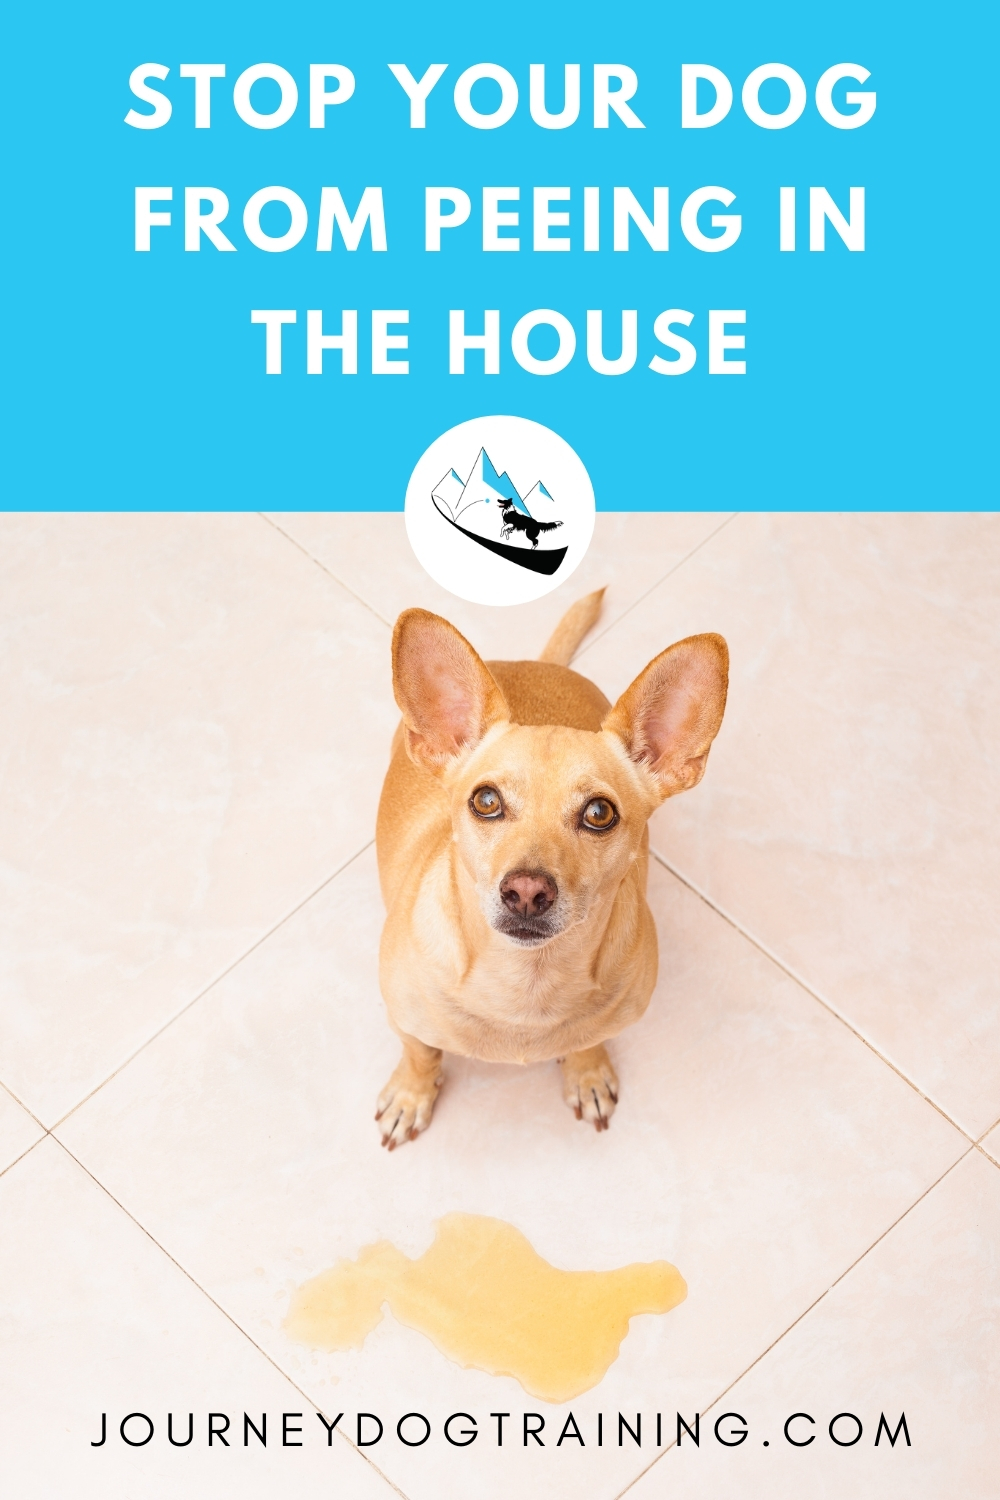 how to stop your dog from peeing in the house | journeydogtraining.com